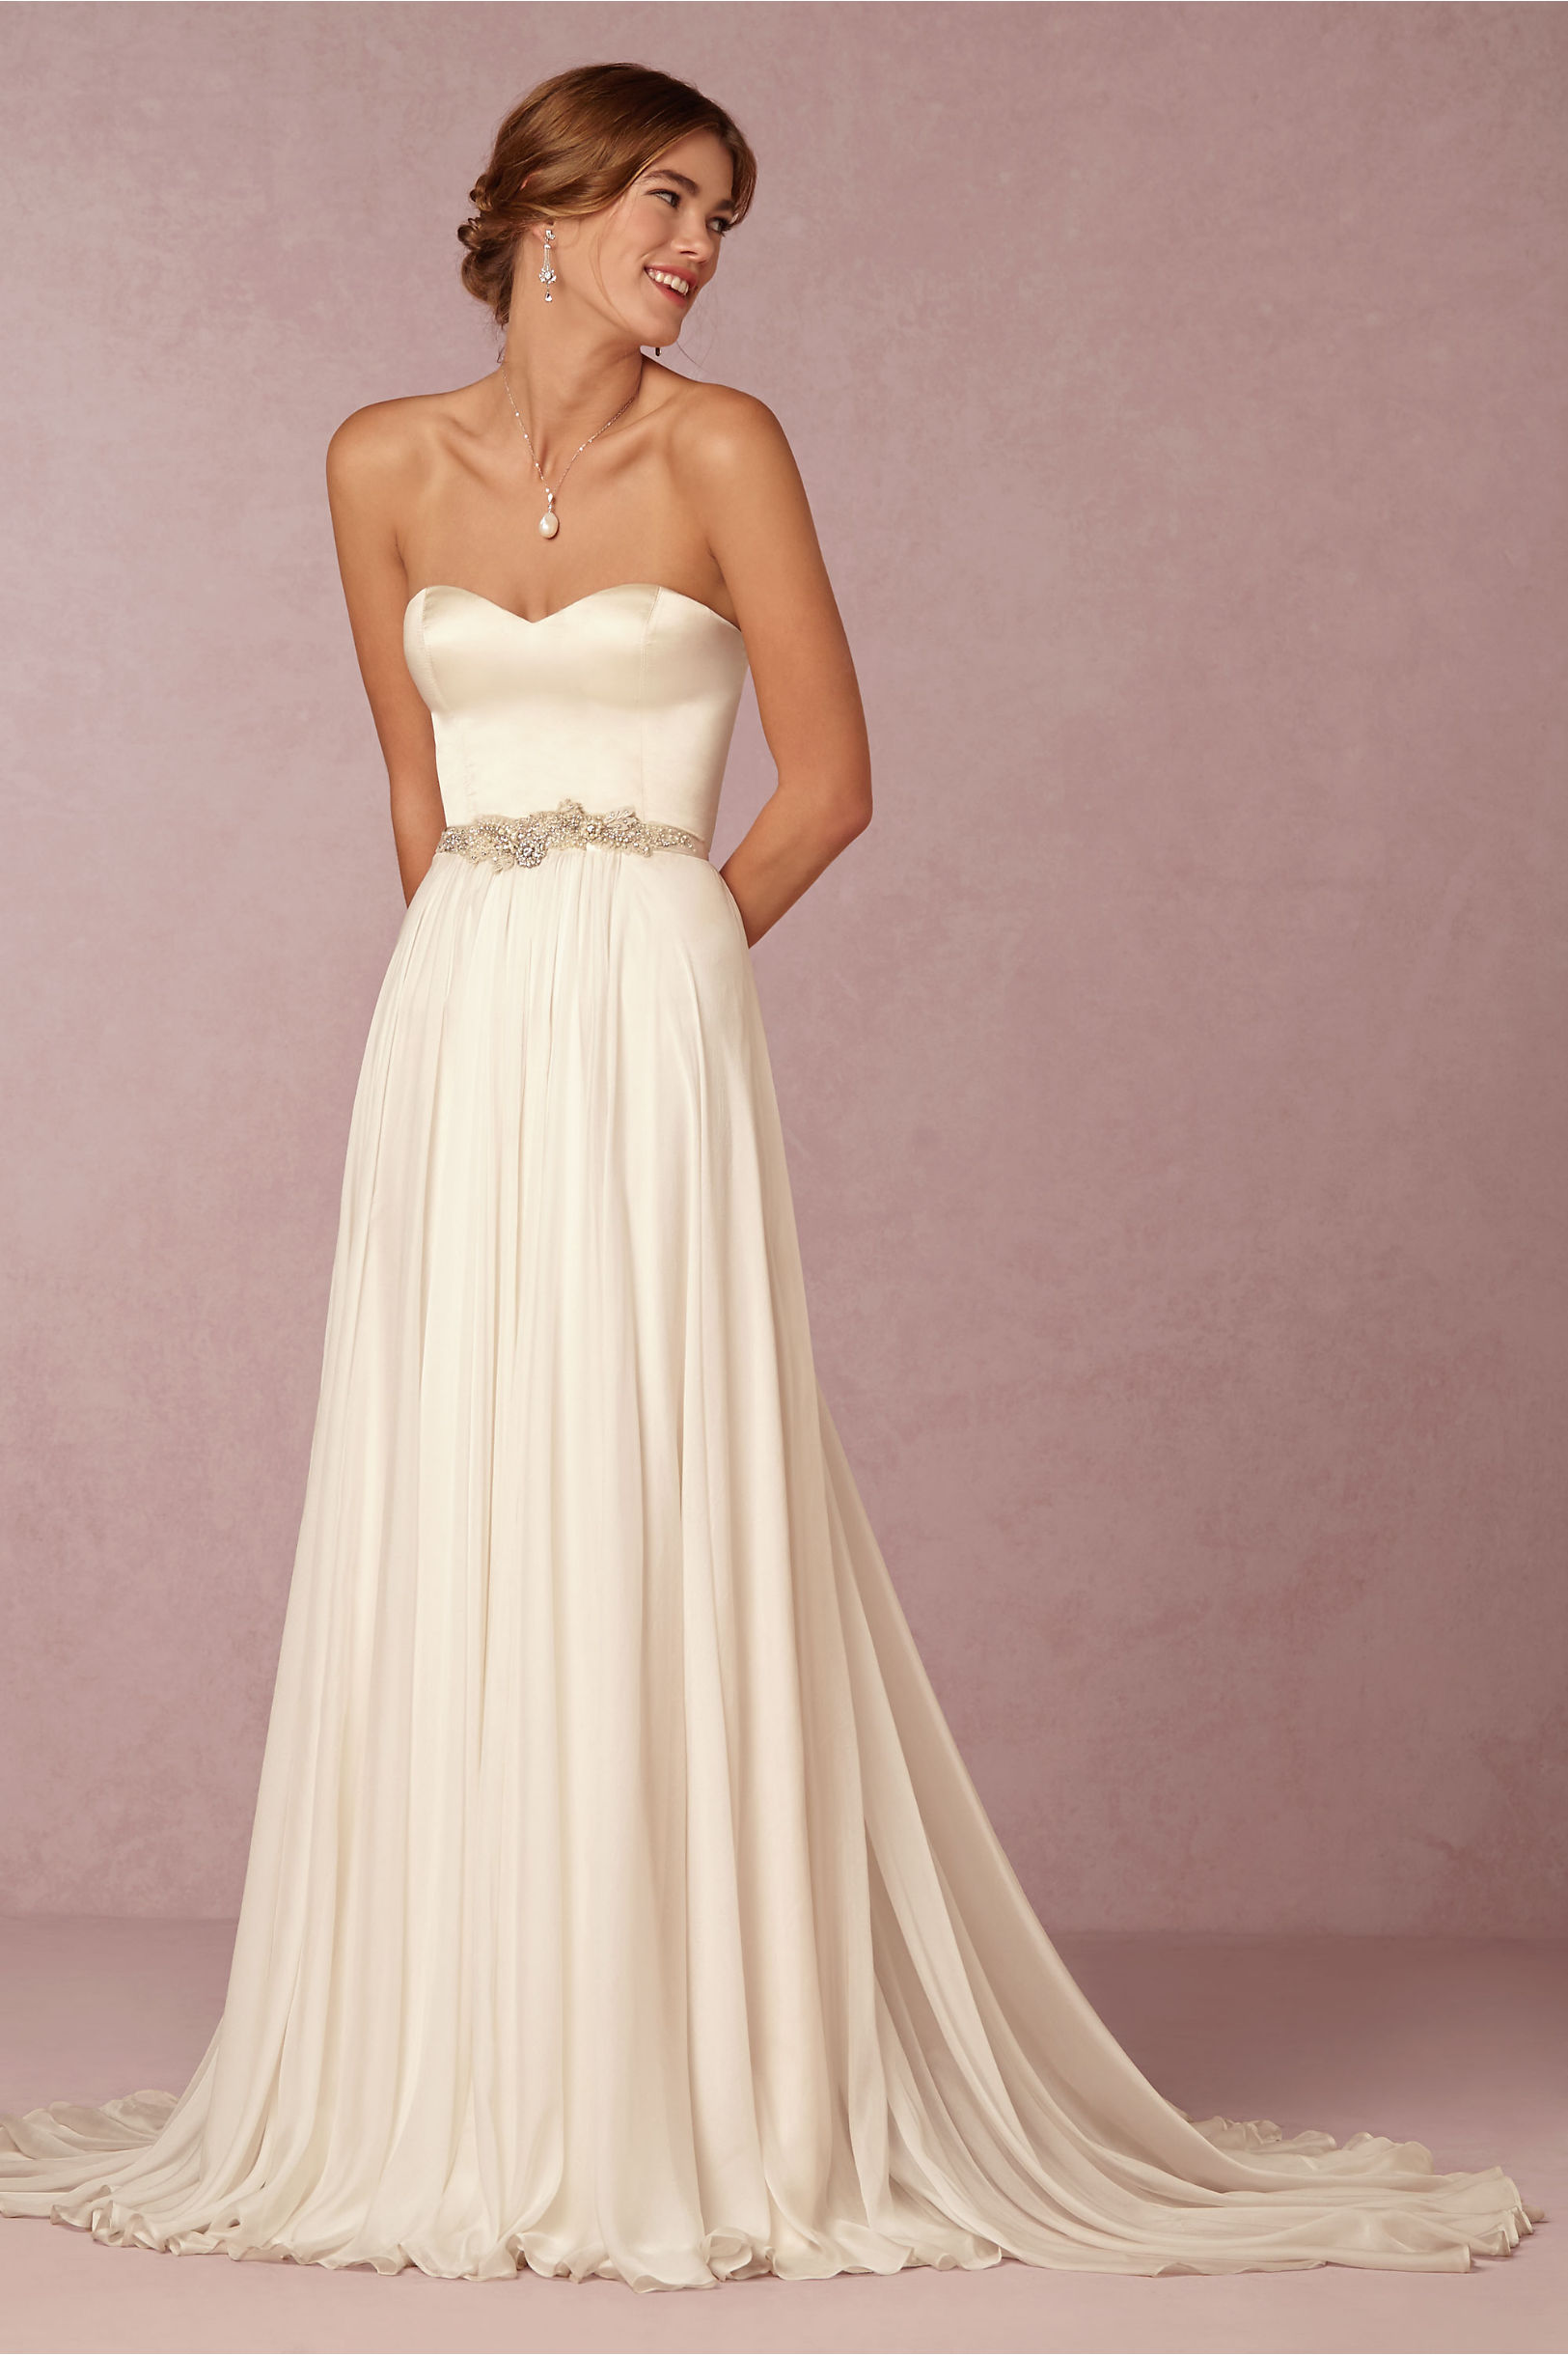 Darla Camisole Top & Delia Maxi Skirt in Bride | BHLDN